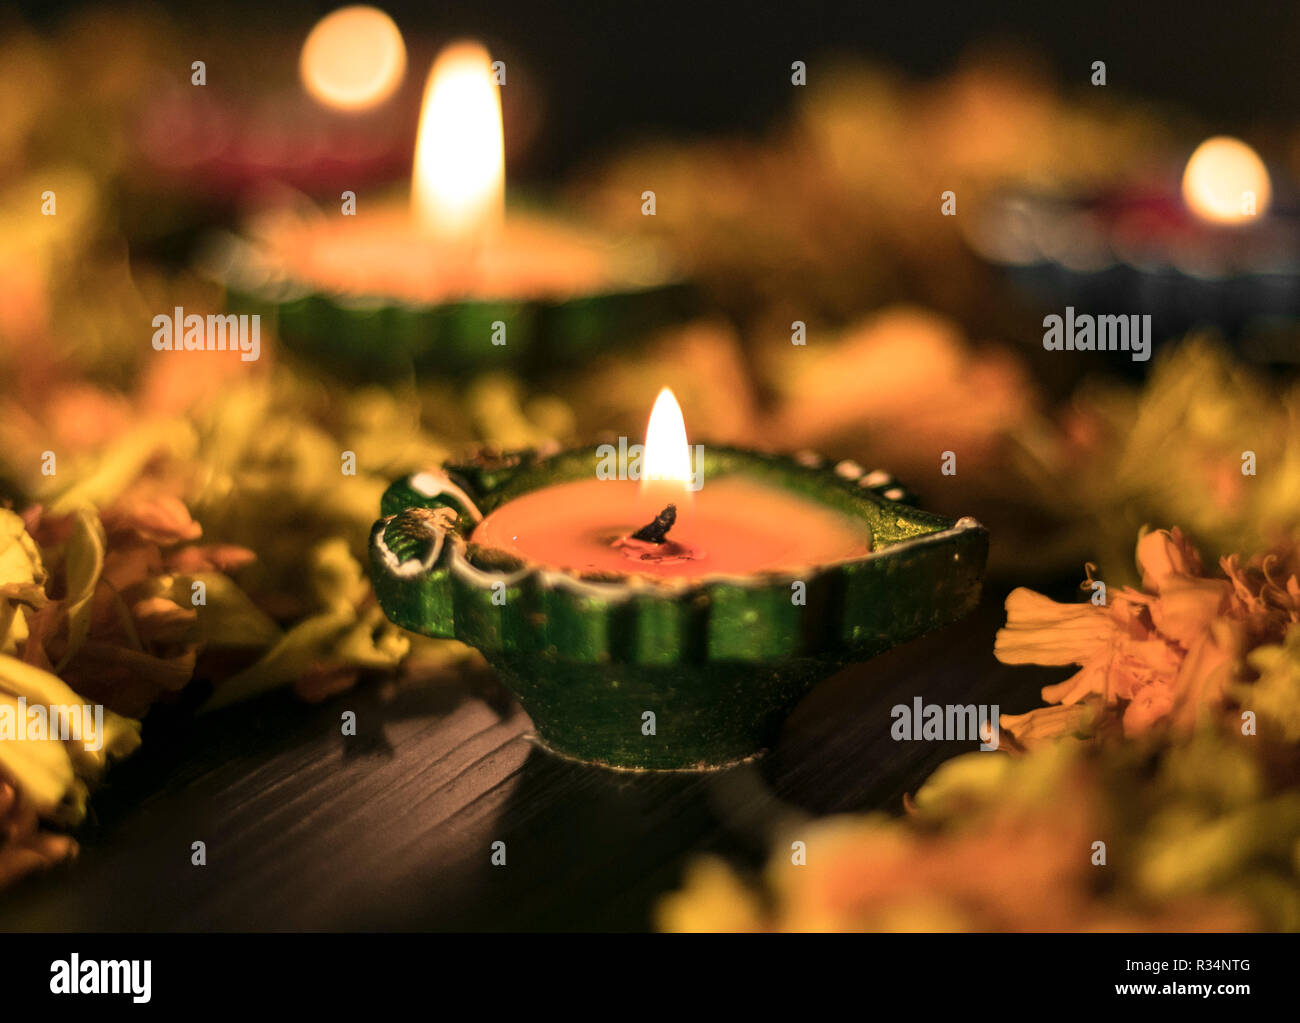 A front view of diya for celebrating diwali and dhanteras in Asia Stock Photo